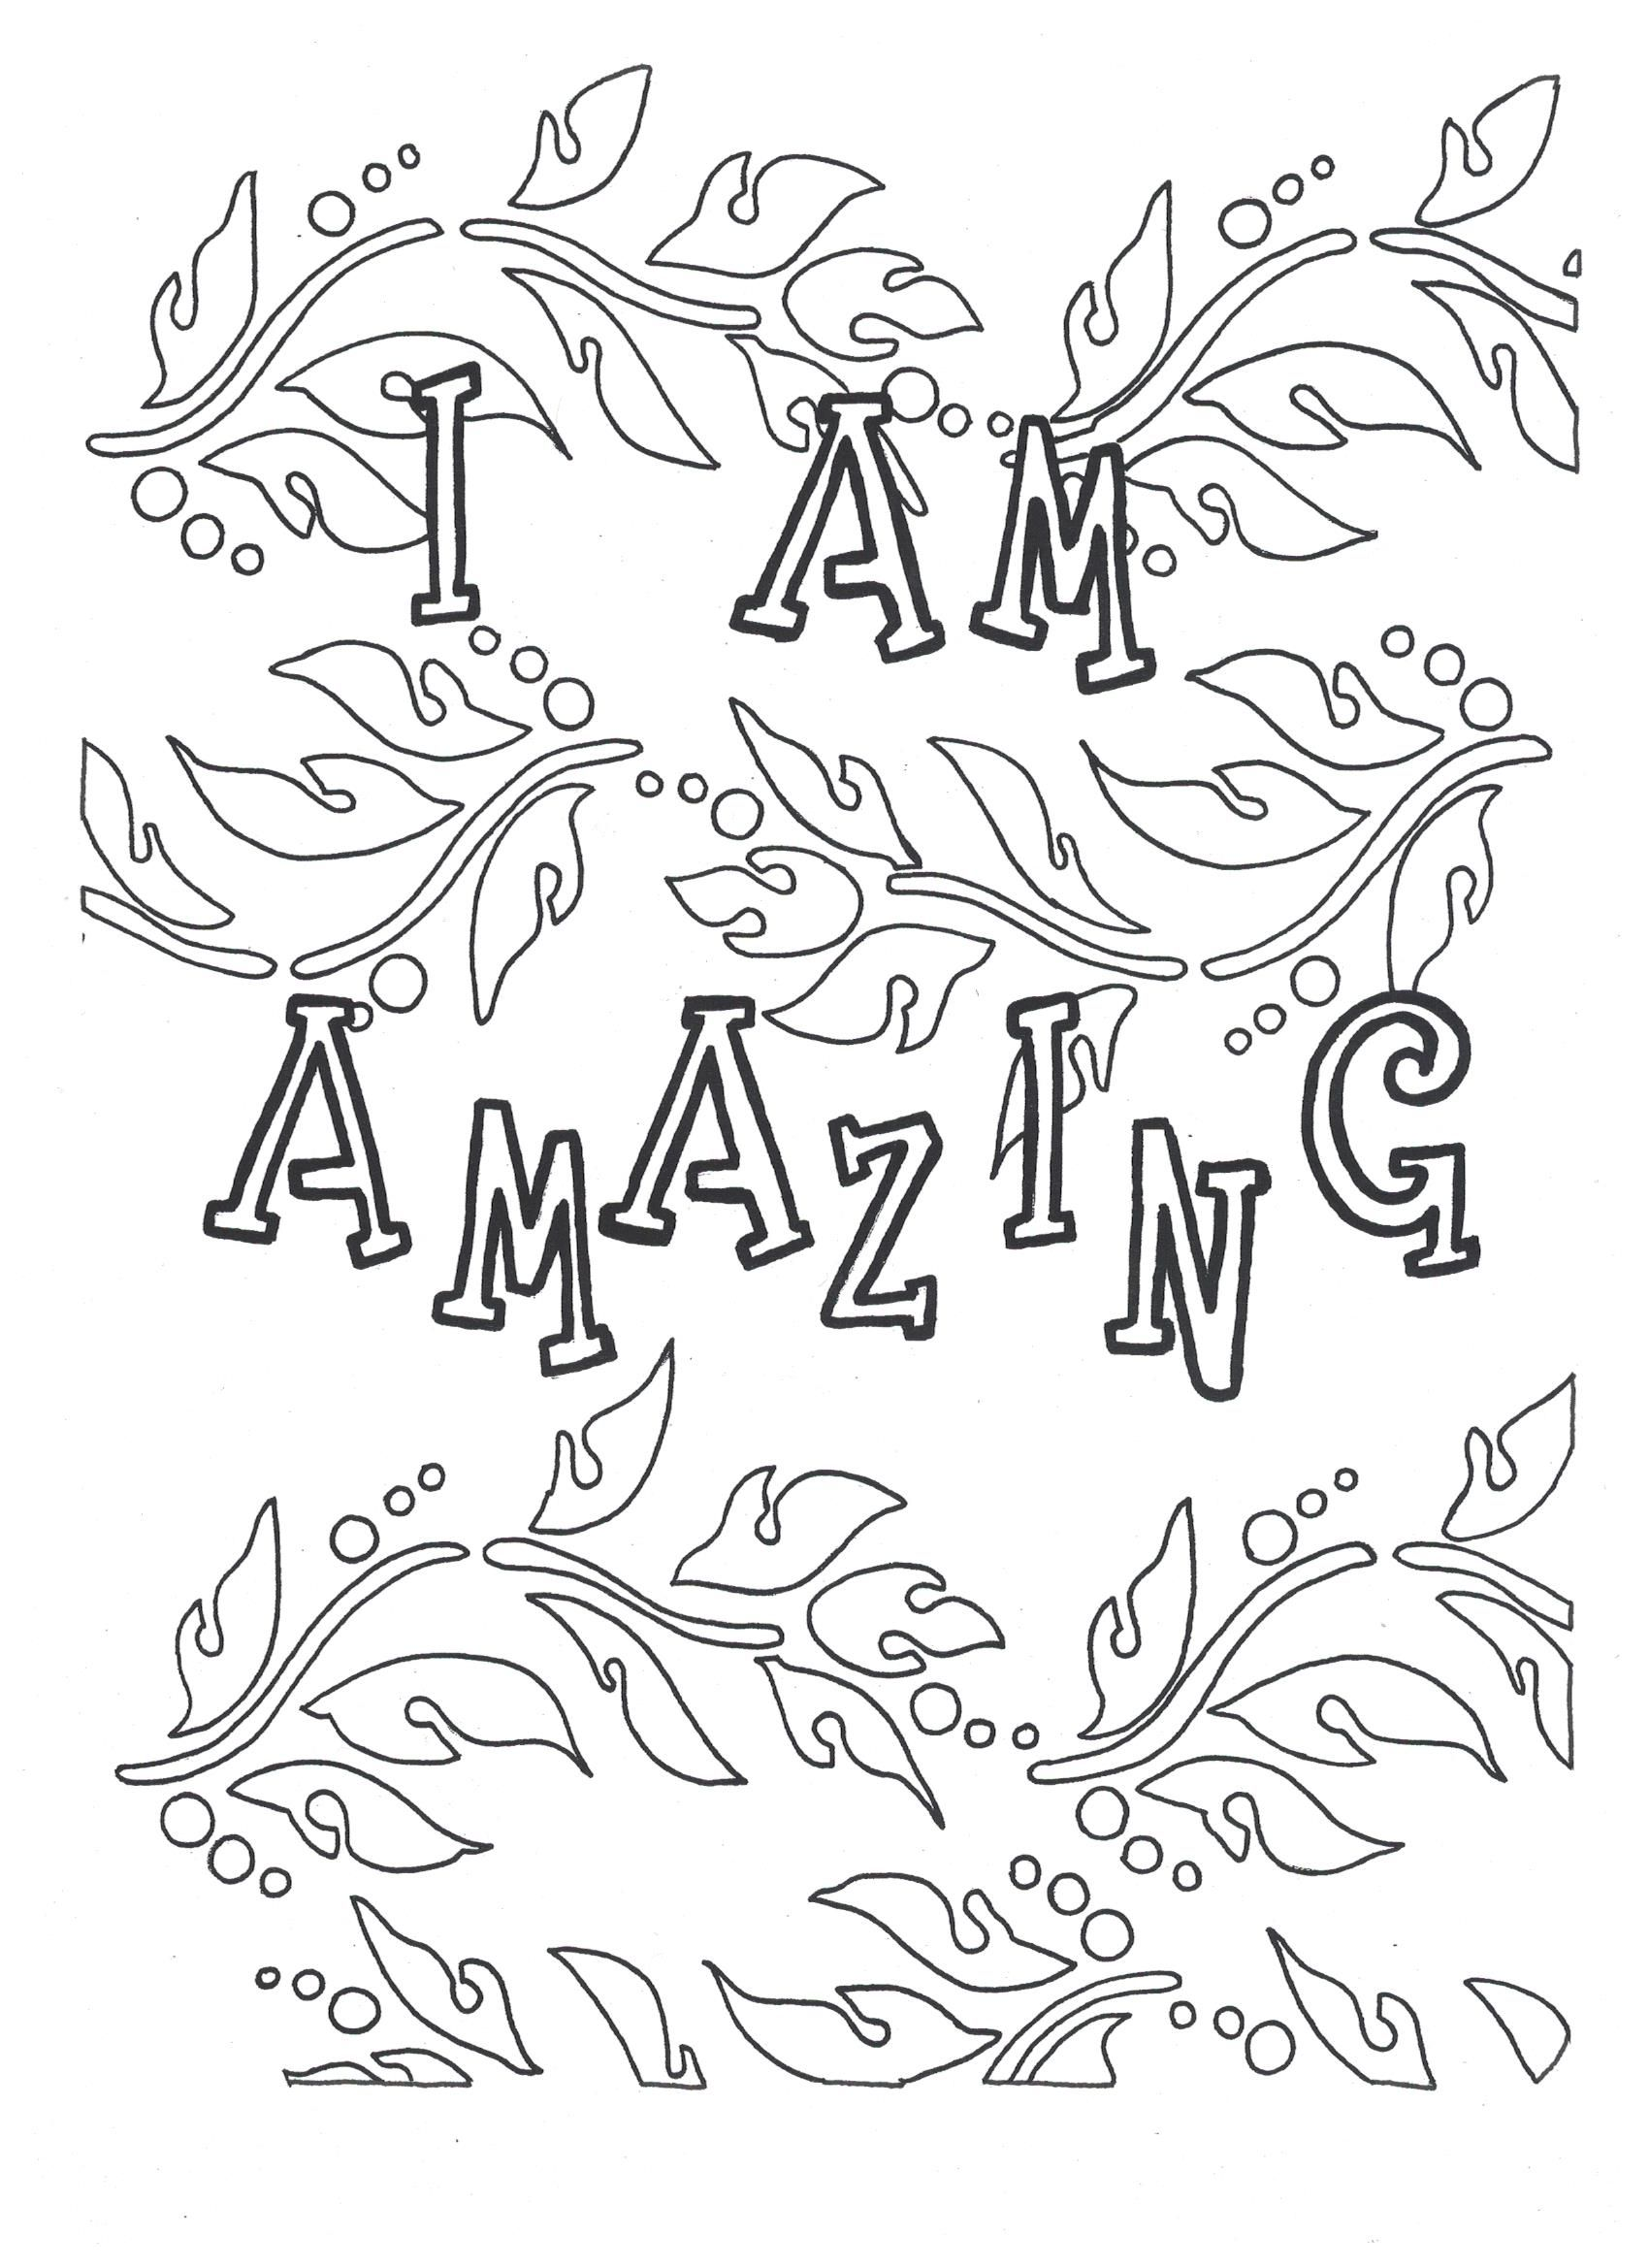 Swear word coloring pages etsy - I Am Amazing Coloring Page Click On Link To Download On Etsy Https